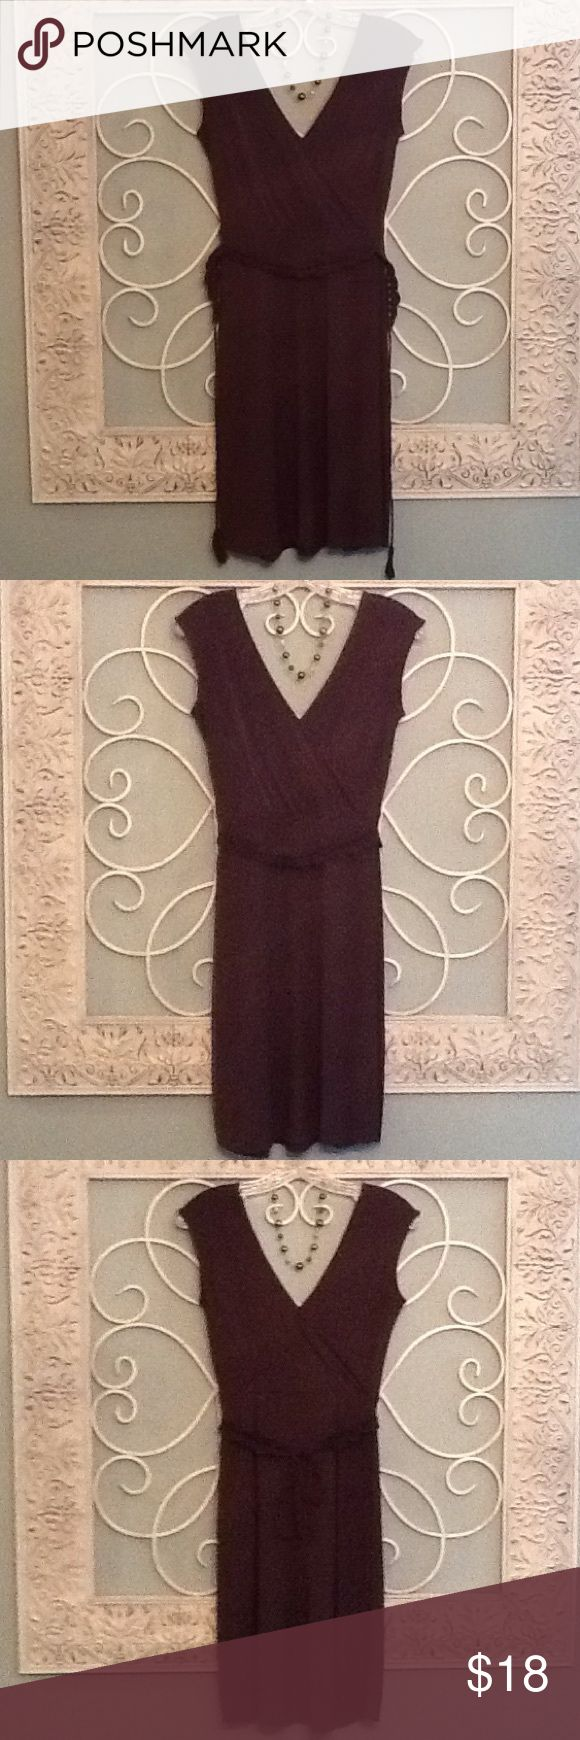 LOFT V-Neck Dress w/Belt. Petite 0. Super Cute Loft Brown V-Neck Dress w/Belt. This Dress is in excellent condition as it was only worn a couple times.  If you need me to take another picture or get specific measurements let me know LOFT Dresses Midi